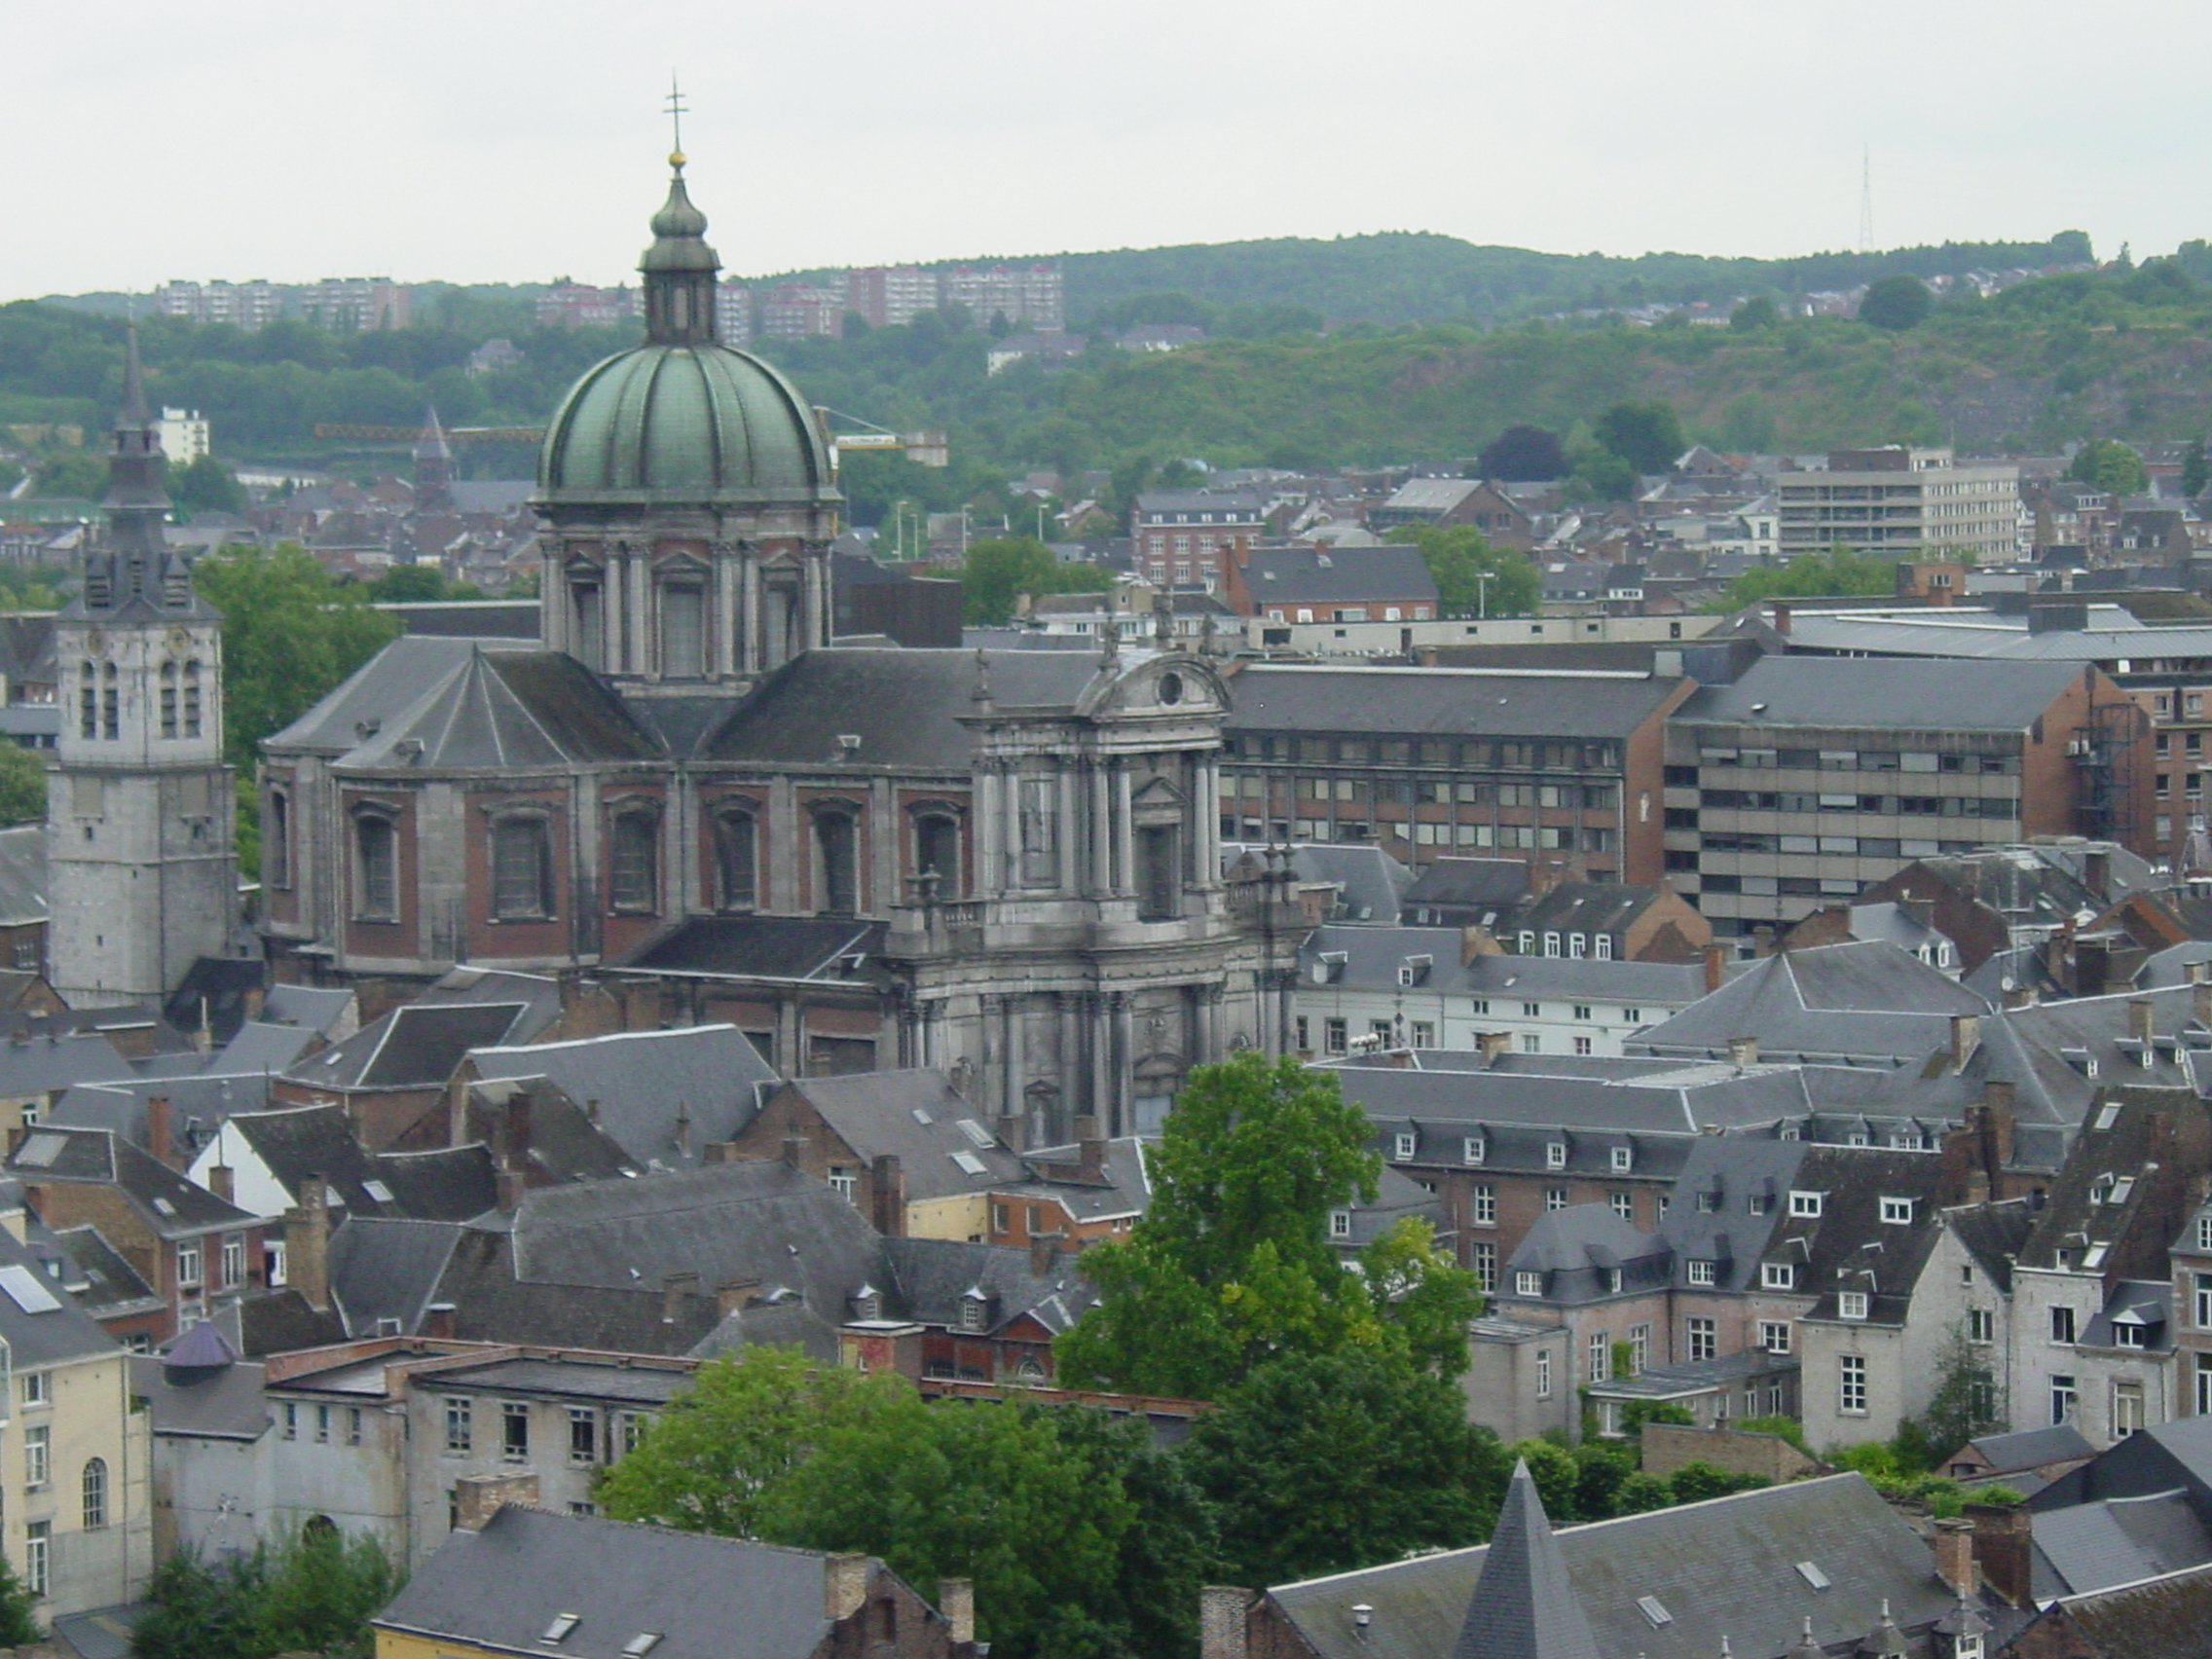 https://i1.wp.com/upload.wikimedia.org/wikipedia/commons/d/db/Namur,_la_Cath%C3%A9drale_Saint-Aubain.JPG